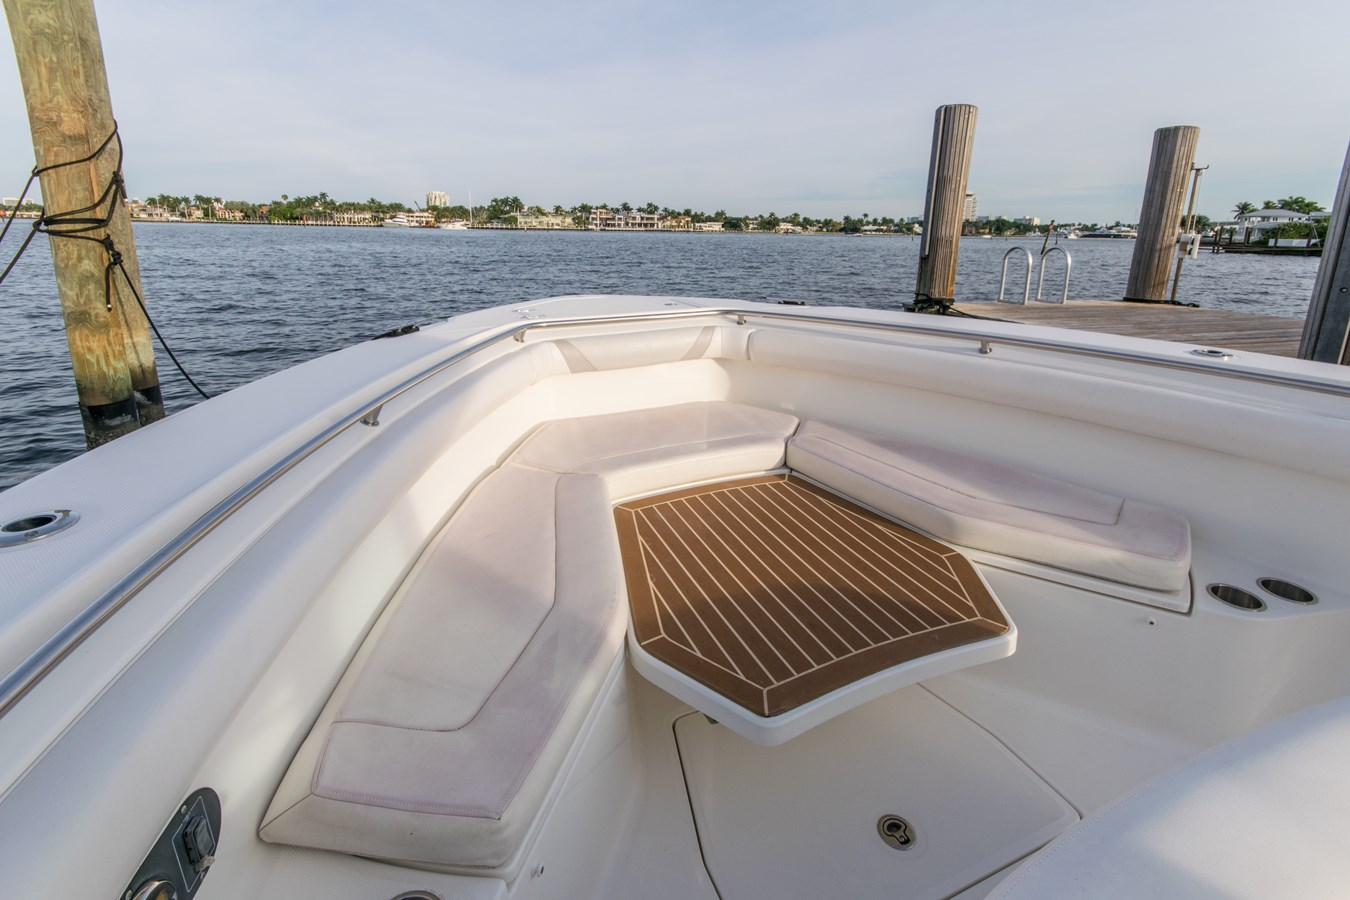 4 2011 BOSTON WHALER Outrage Center Console 2776565